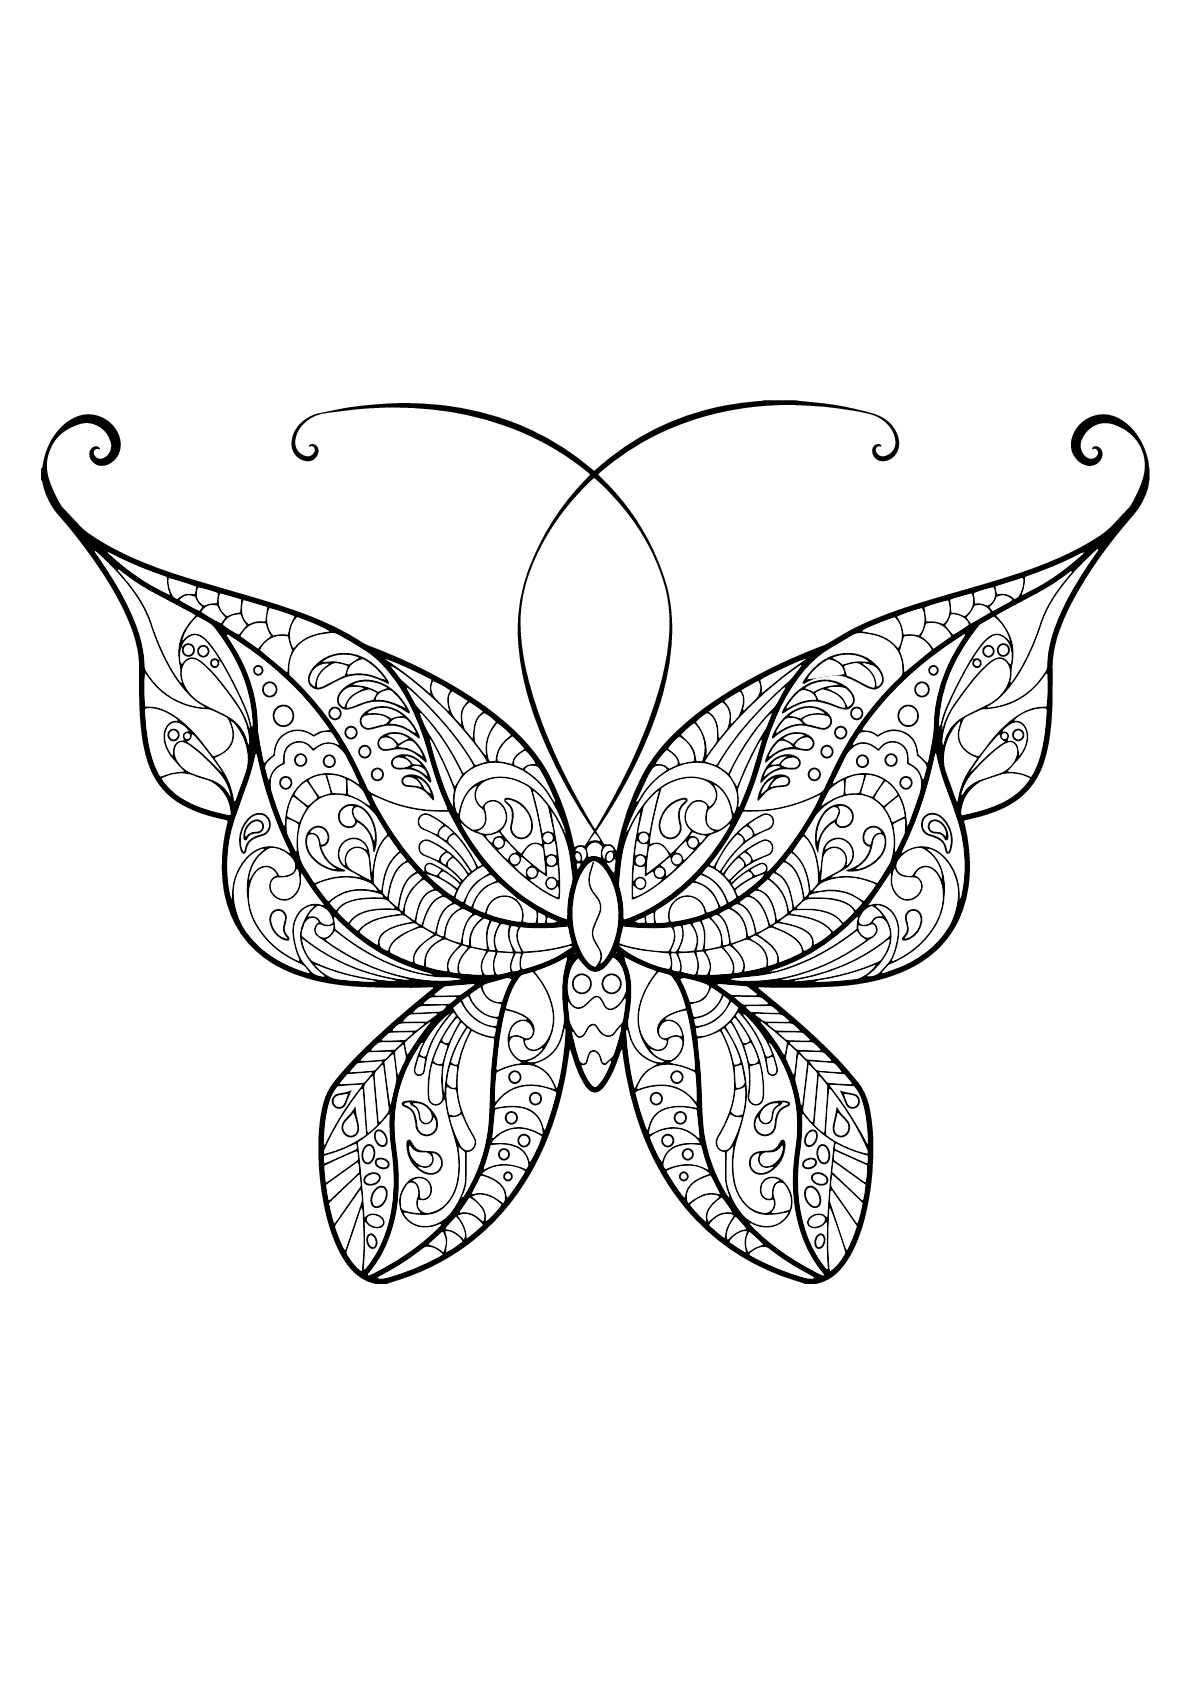 Butterflies to color for children - Butterflies Kids Coloring Pages